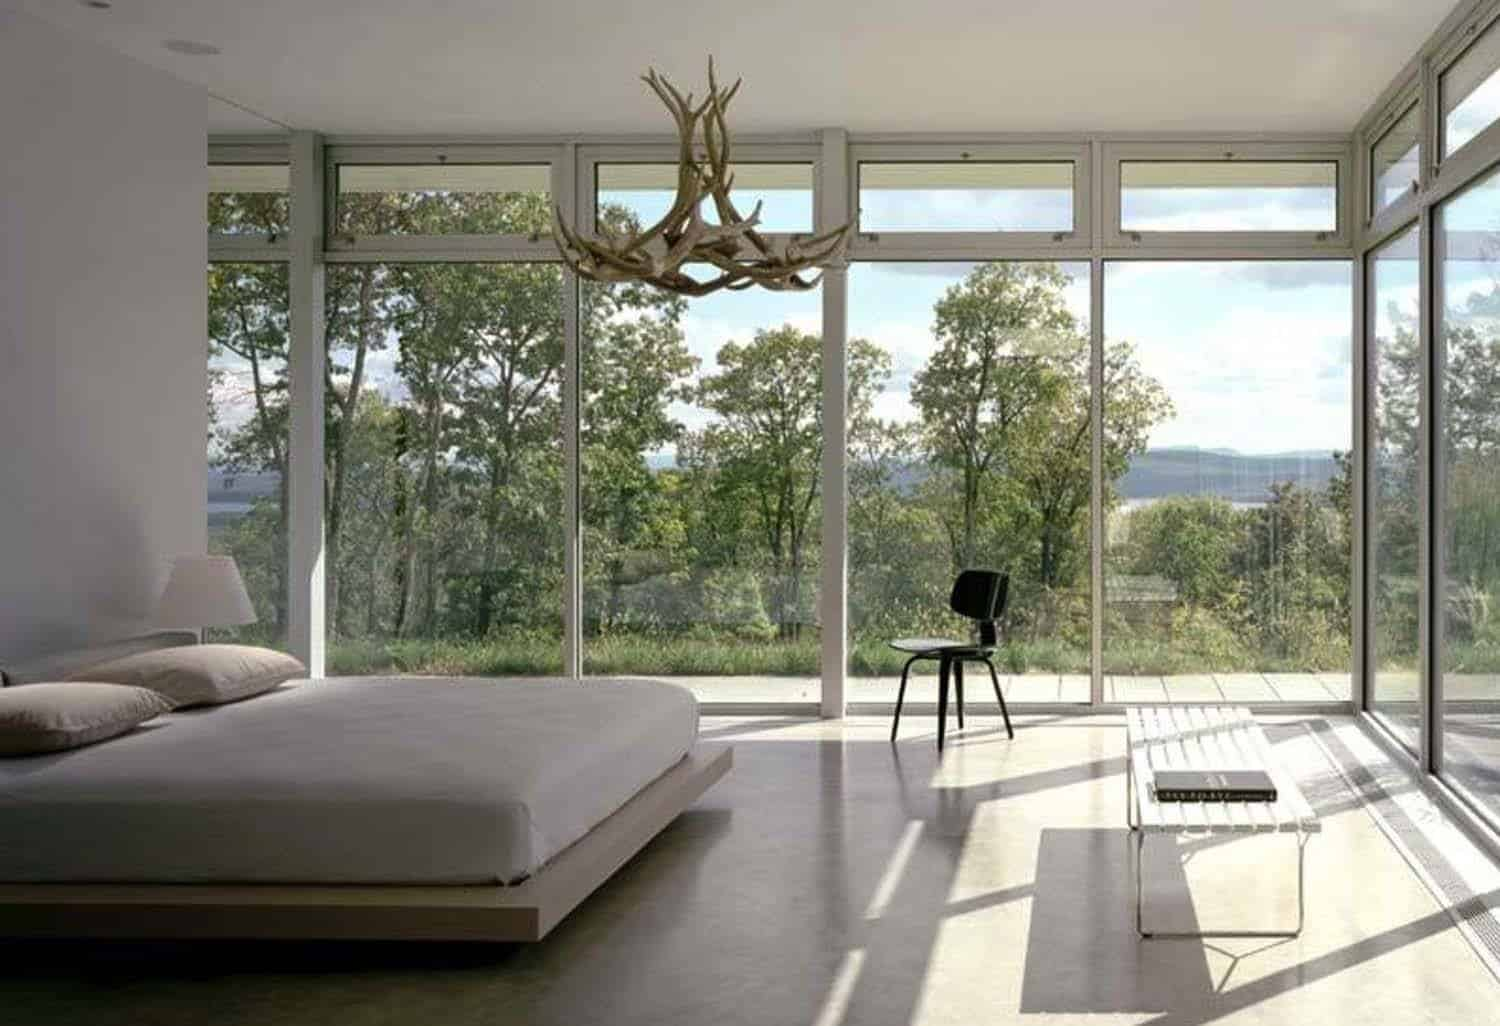 Modern Mountain Home-Audrey Matlock Architects-07-1 Kindesign